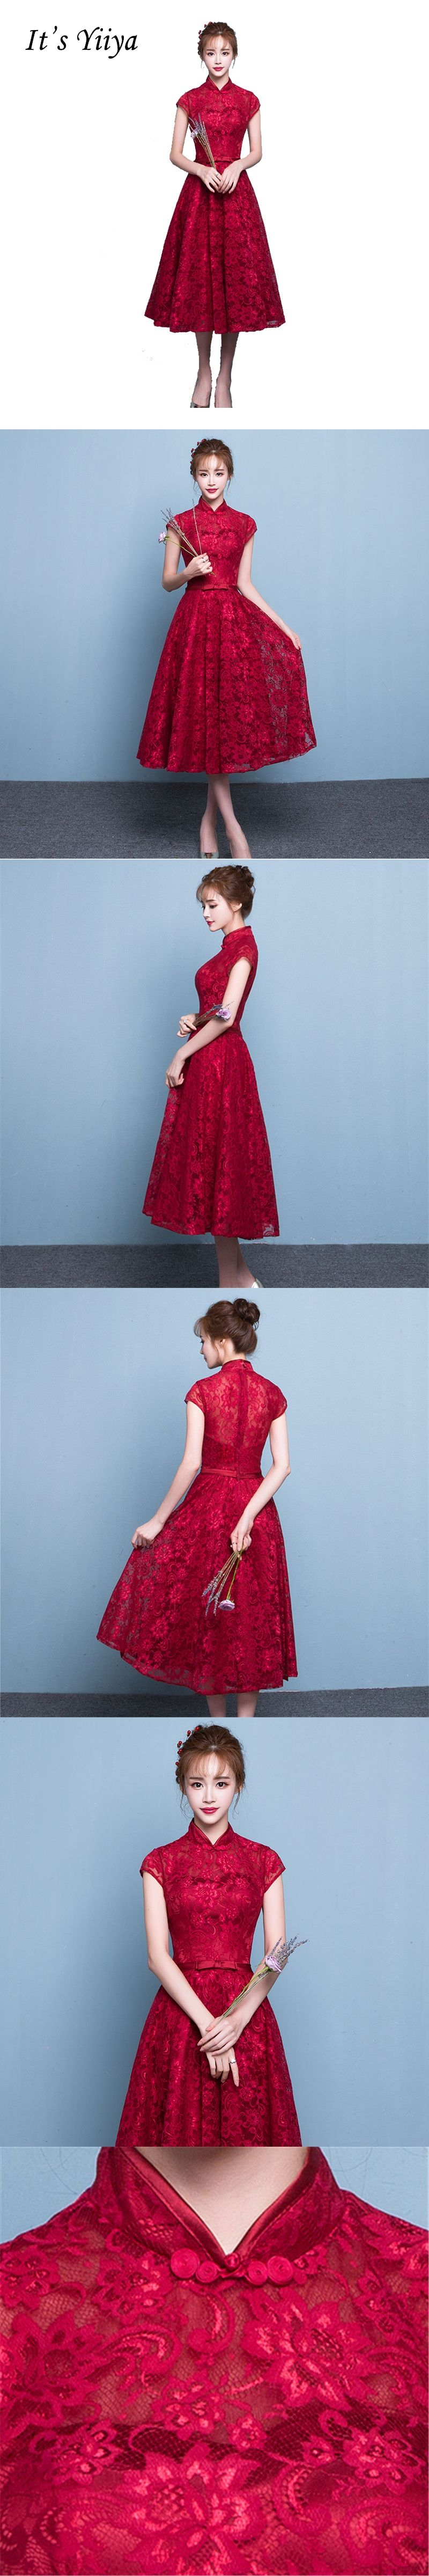 It\'s Yiiya Wine Red High-Neck Bow Short Sleeves Party Gown Prom ...